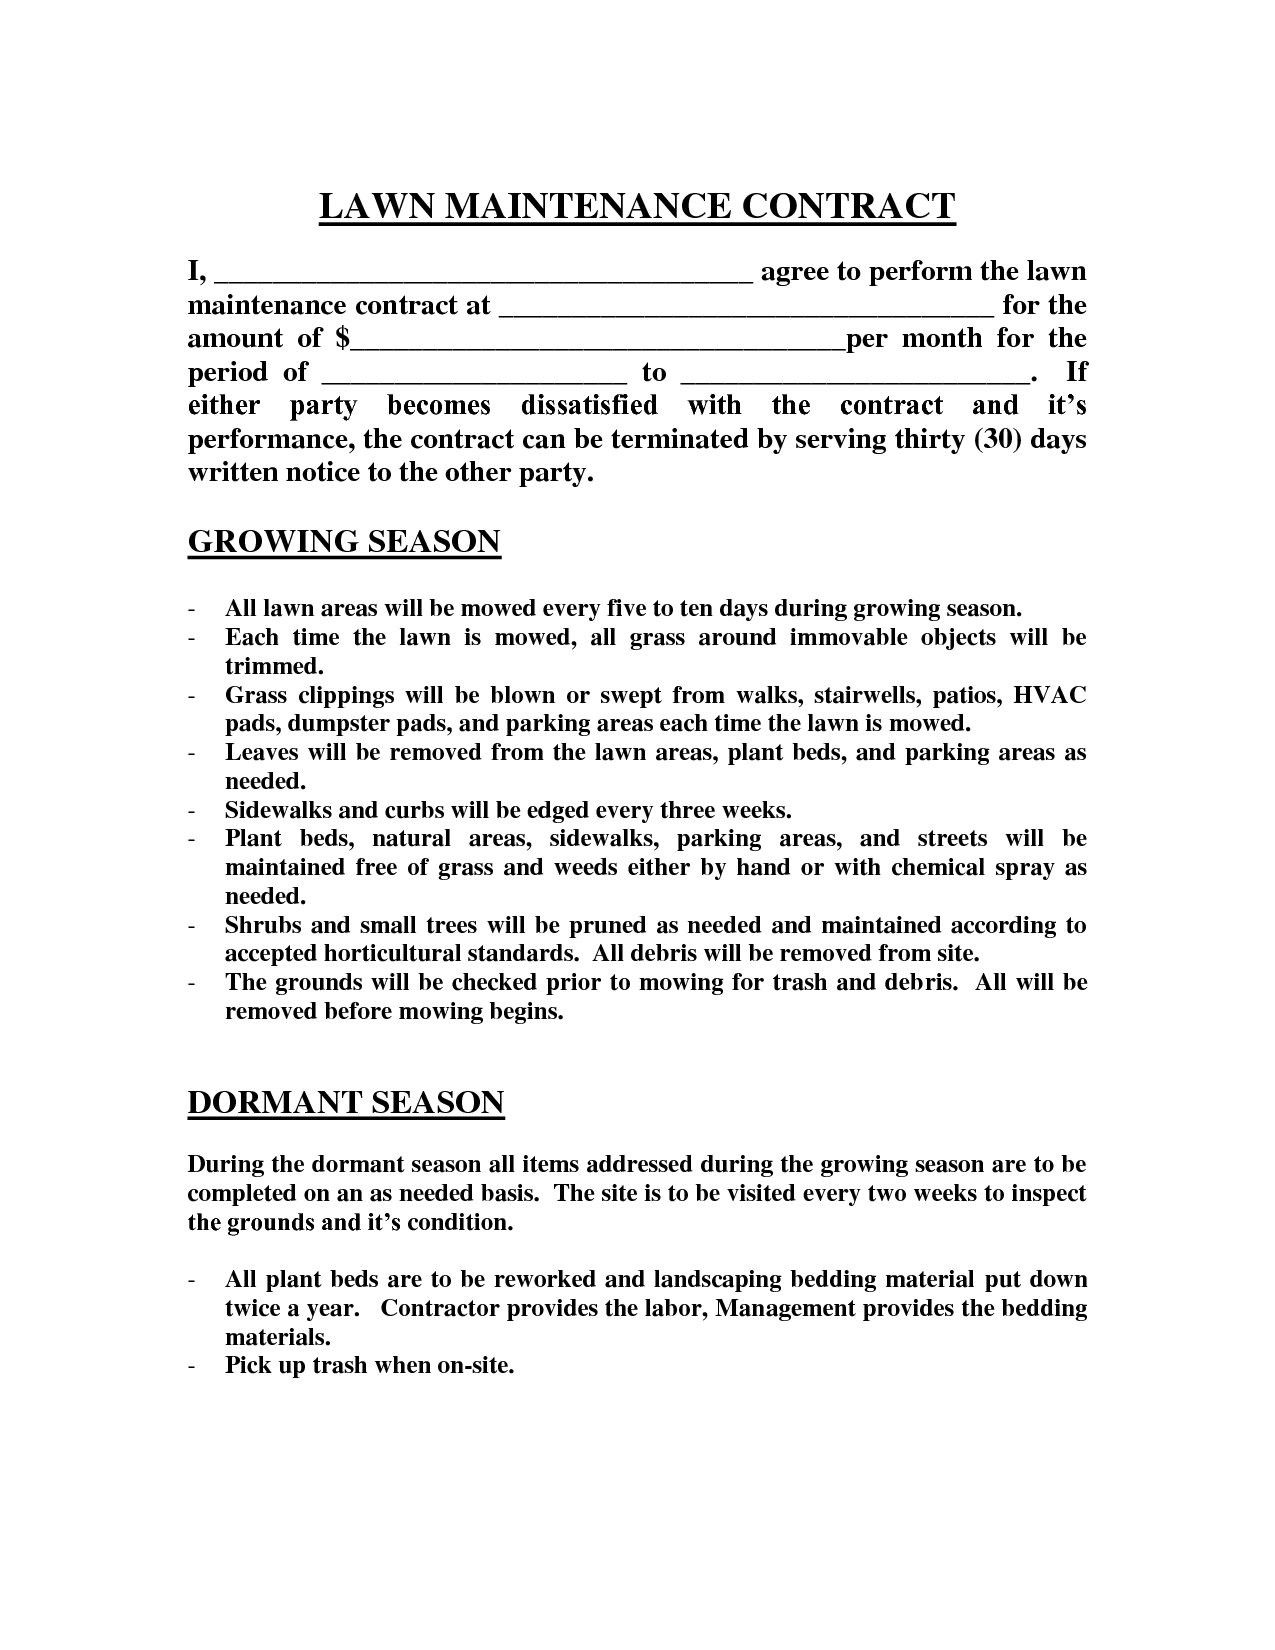 lawn maintenance agreement 3 part the perfect contract lawn care ser lawn service contract template wi landscaping contract template la clips tips. Resume Example. Resume CV Cover Letter